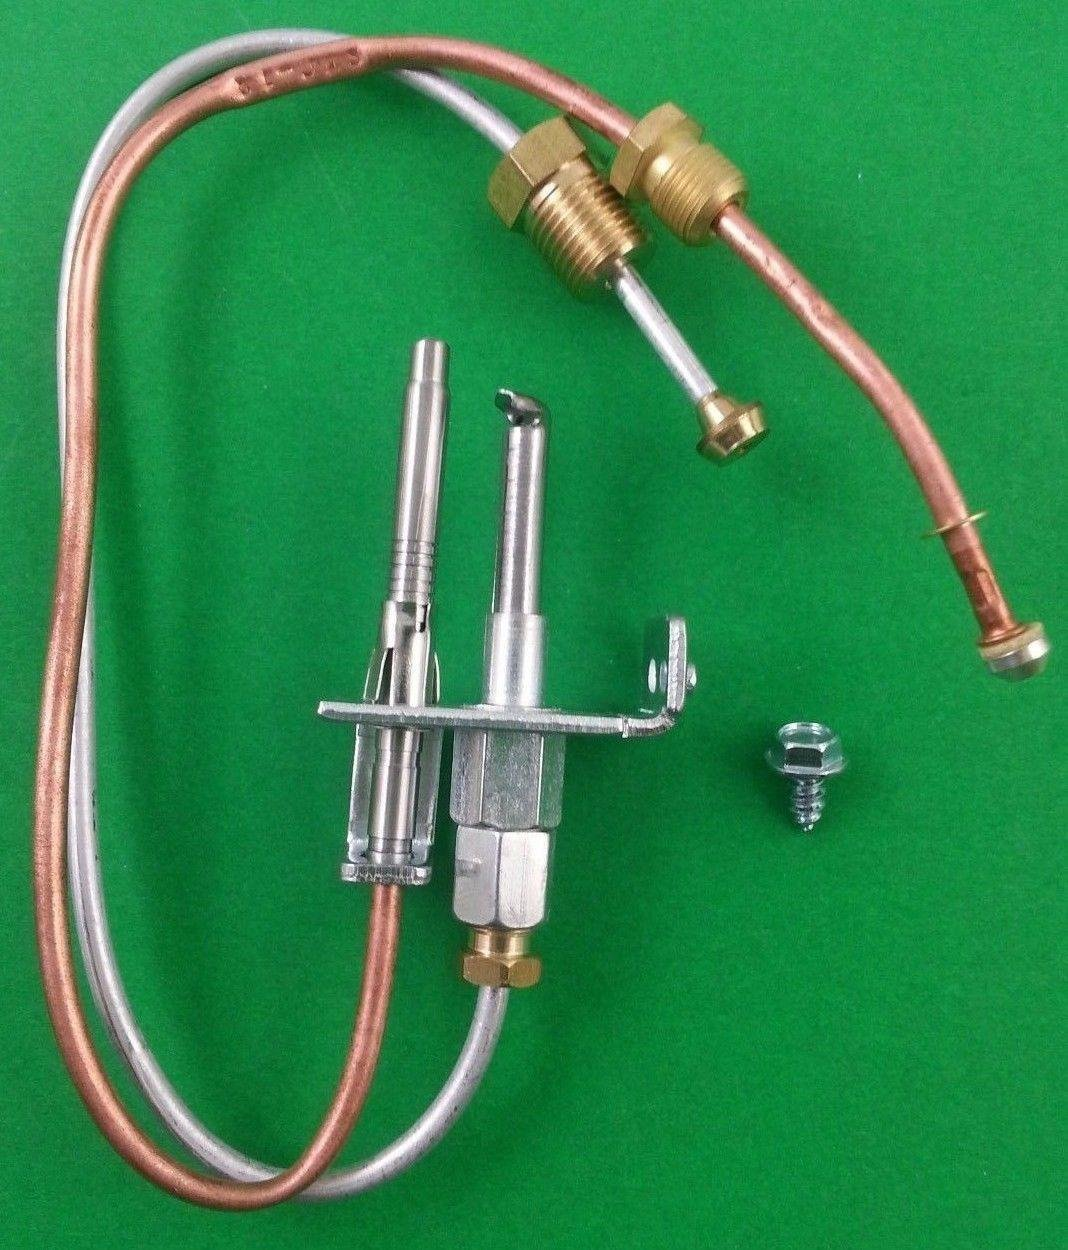 Jade Pilot Water Heater Assembly Atwood 91603